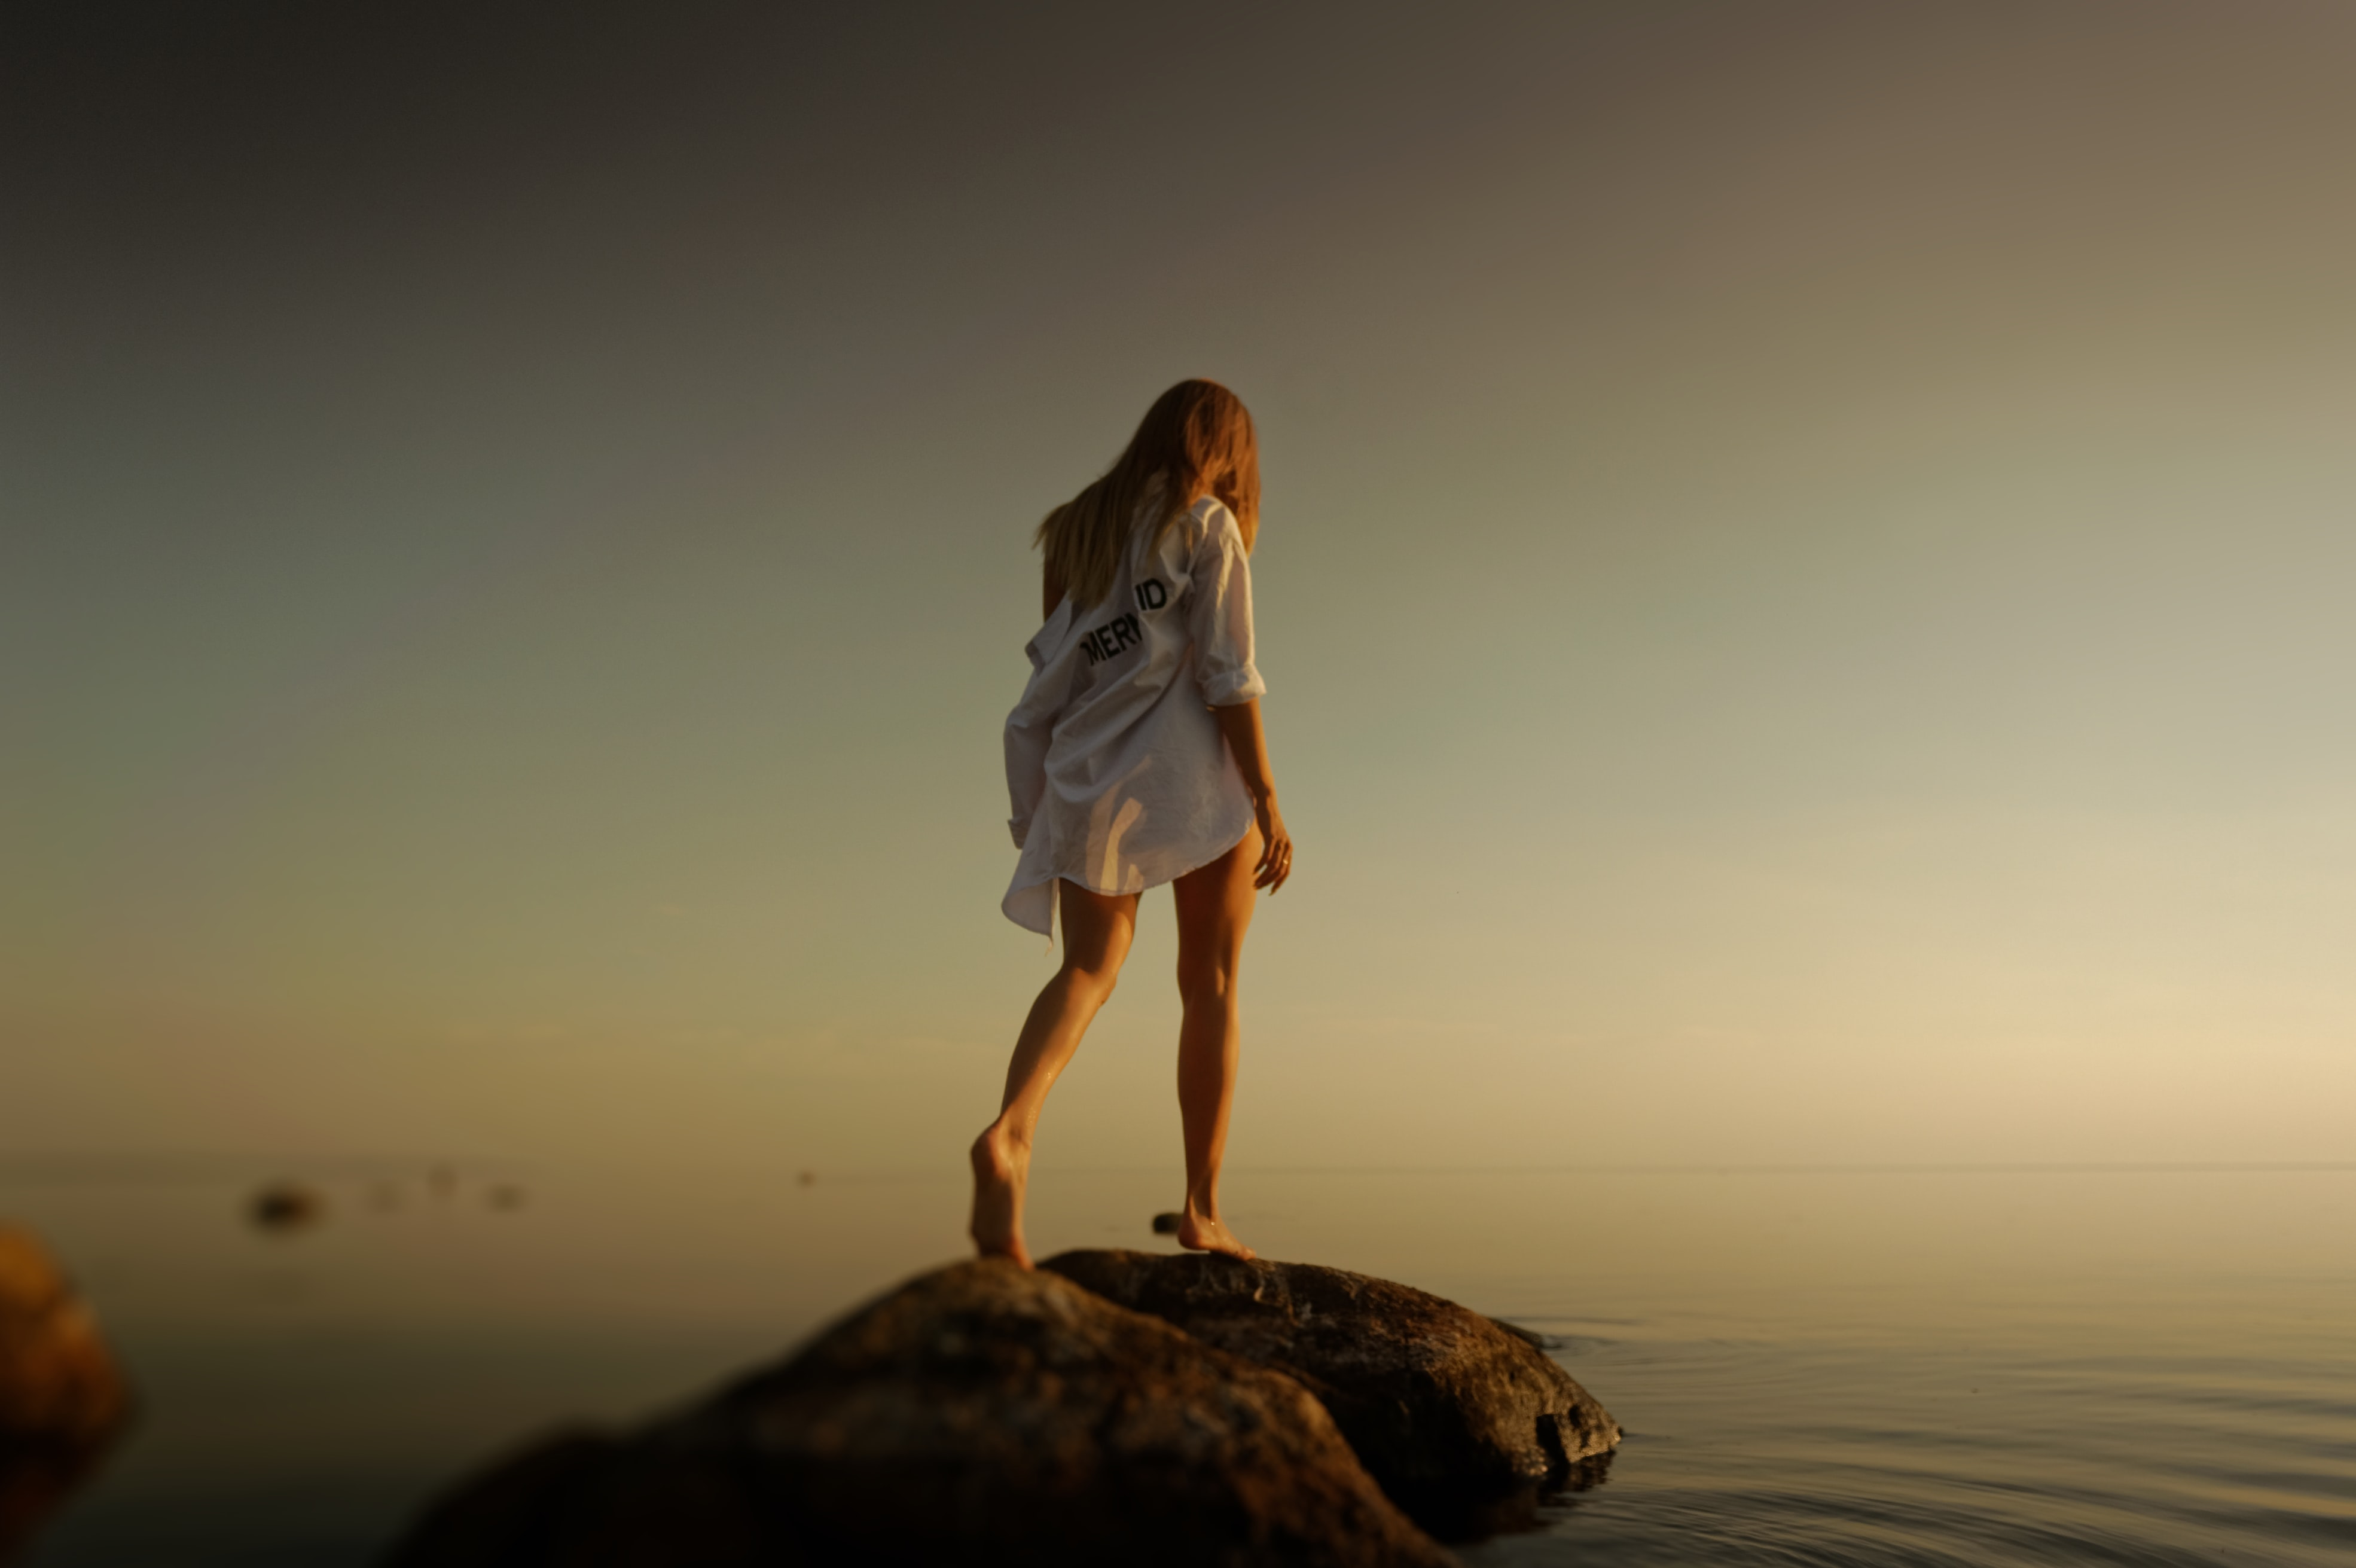 woman walking over brown rocks near body of water during daytime